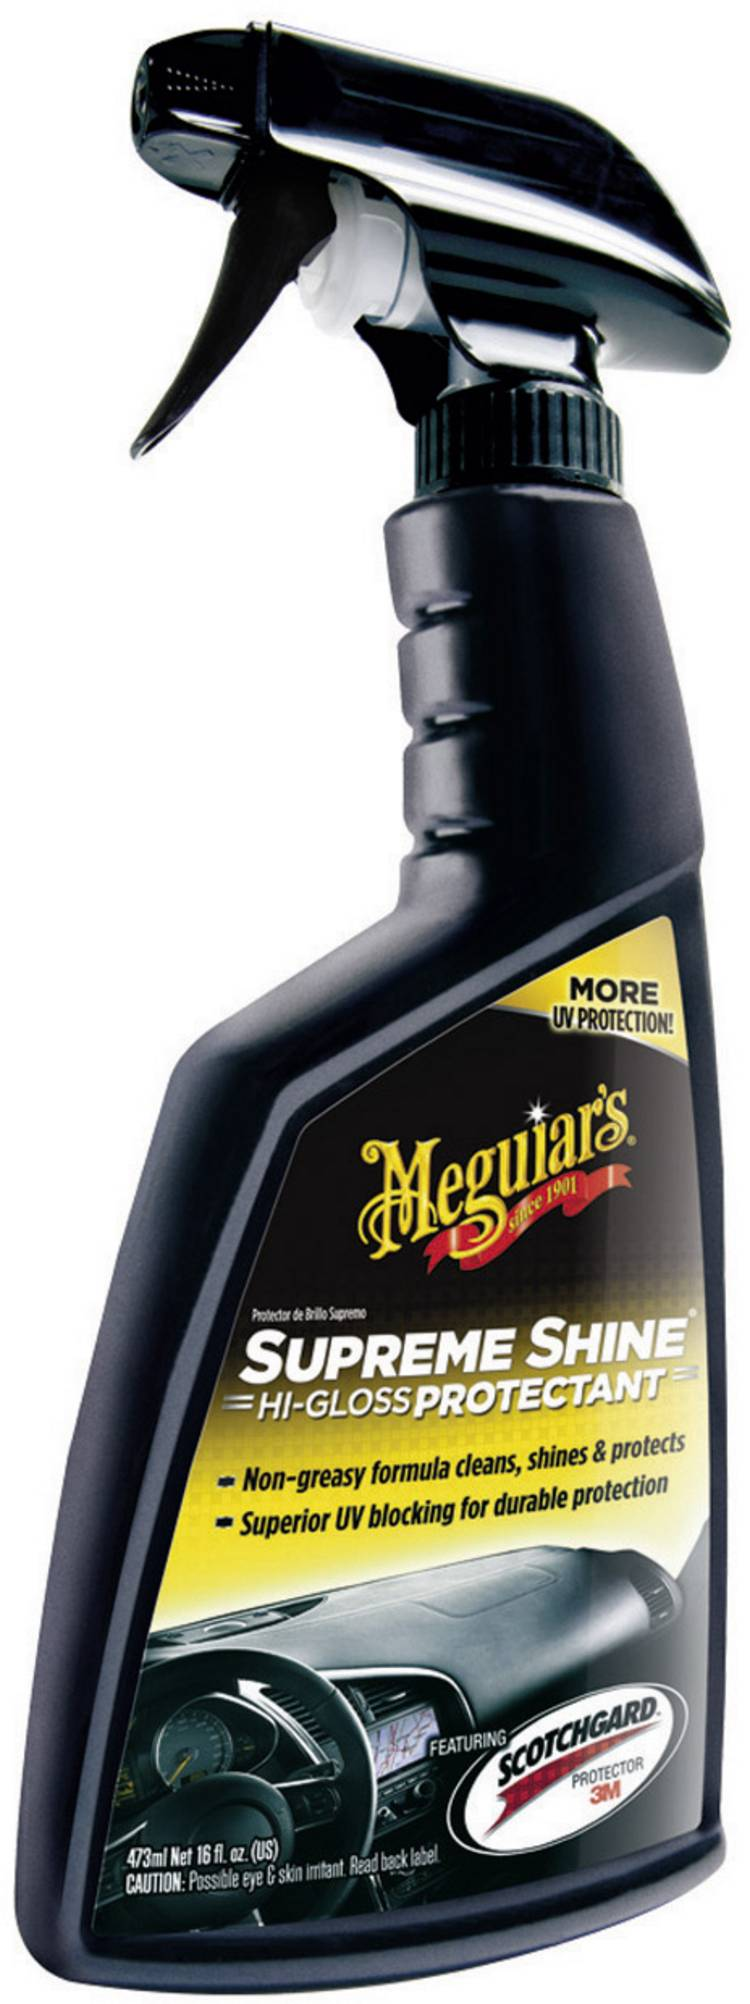 Image of Meguiars Supreme Shine Protectant G4016 473 ml